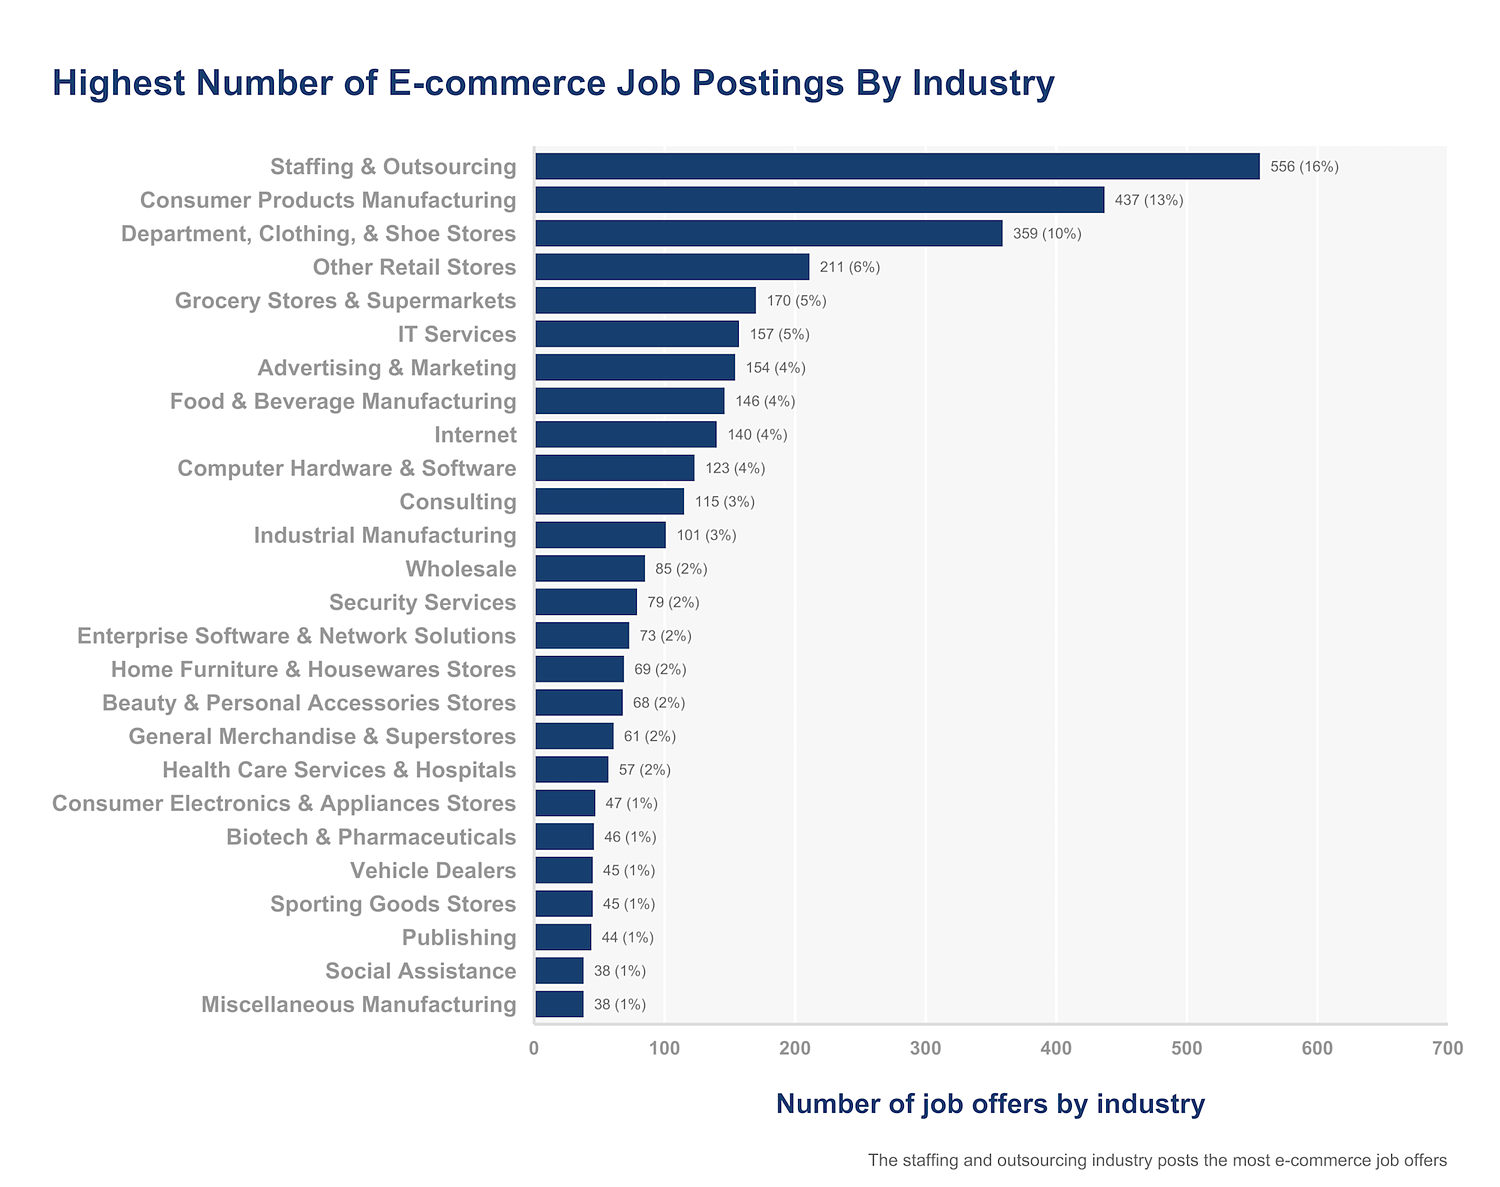 e-commerce job postings by industry